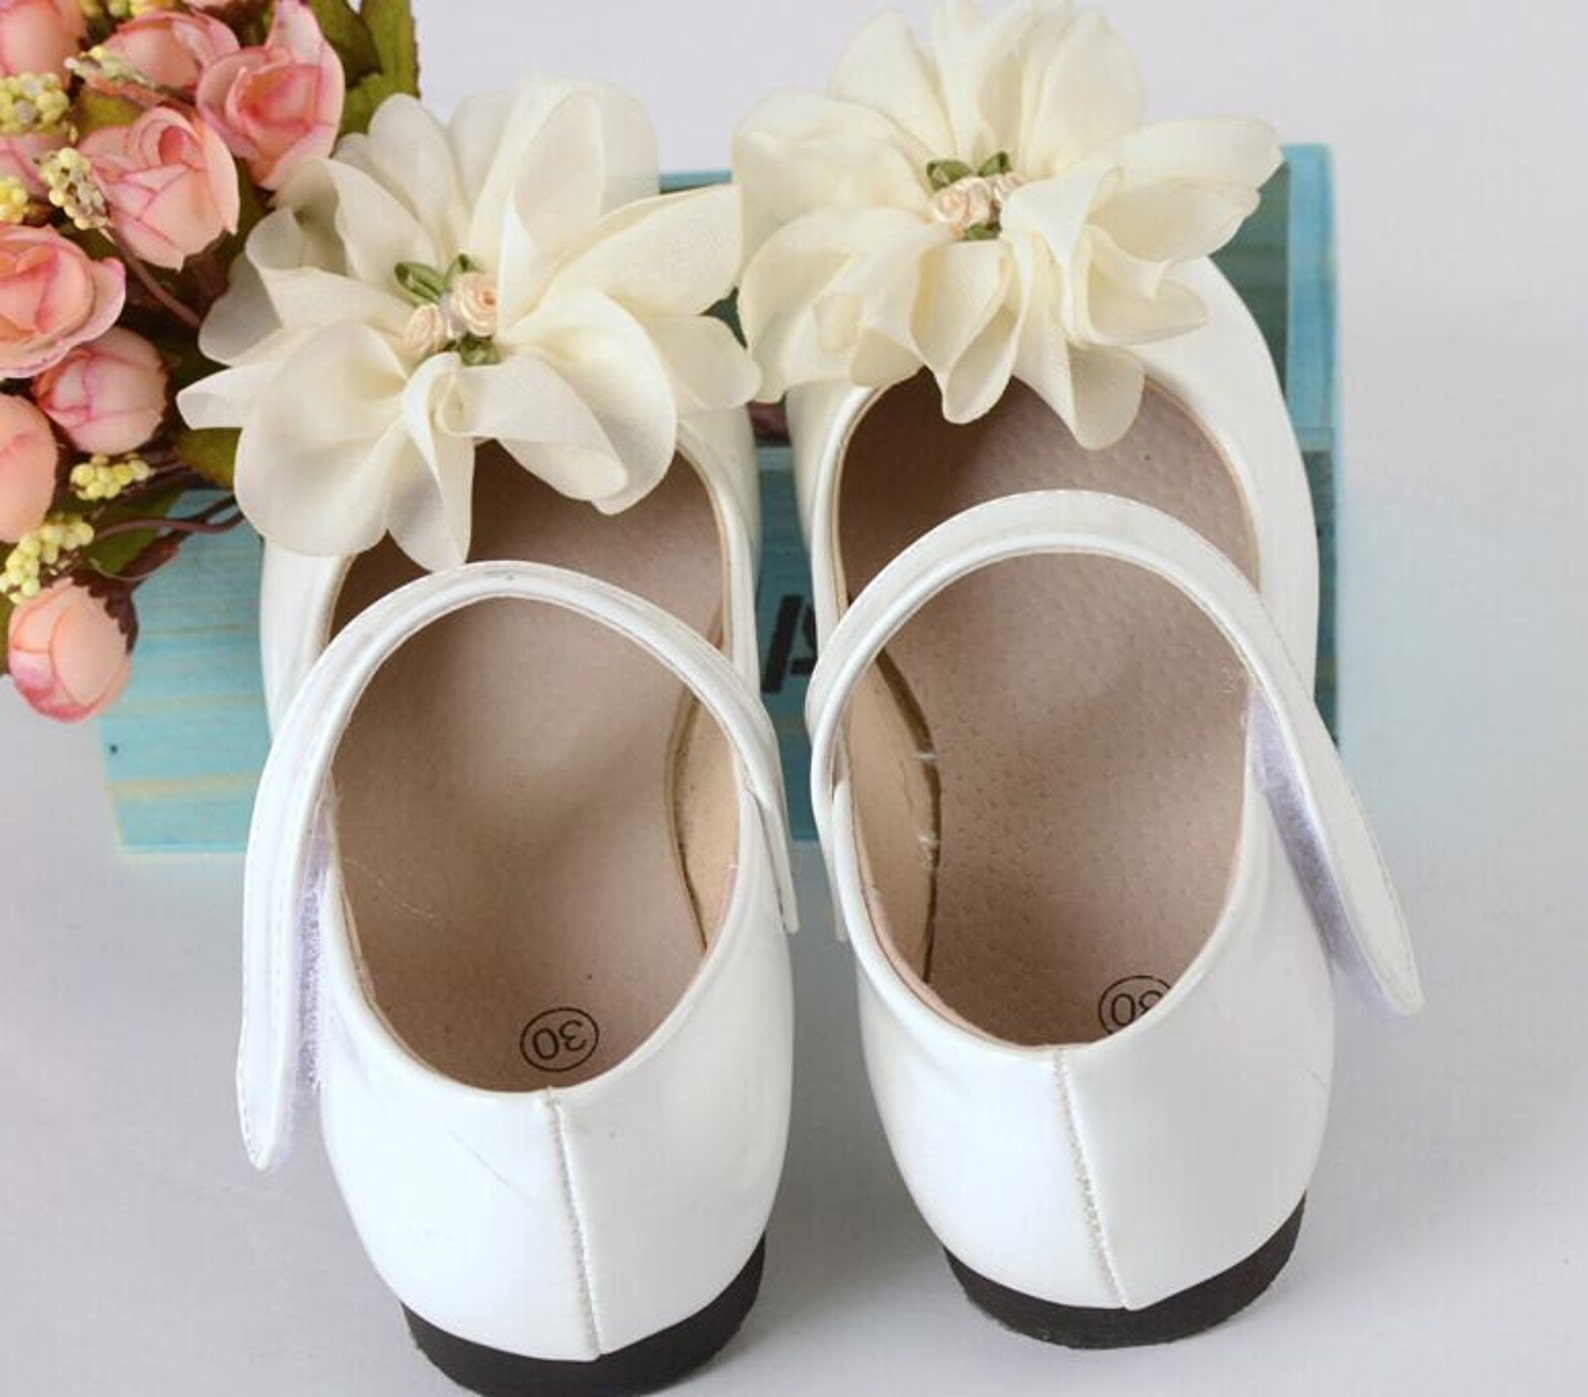 flower girl shoes ivory lace flowers white leather shoes ankle strap-dance shoes-ballet flat shoes-children shoes